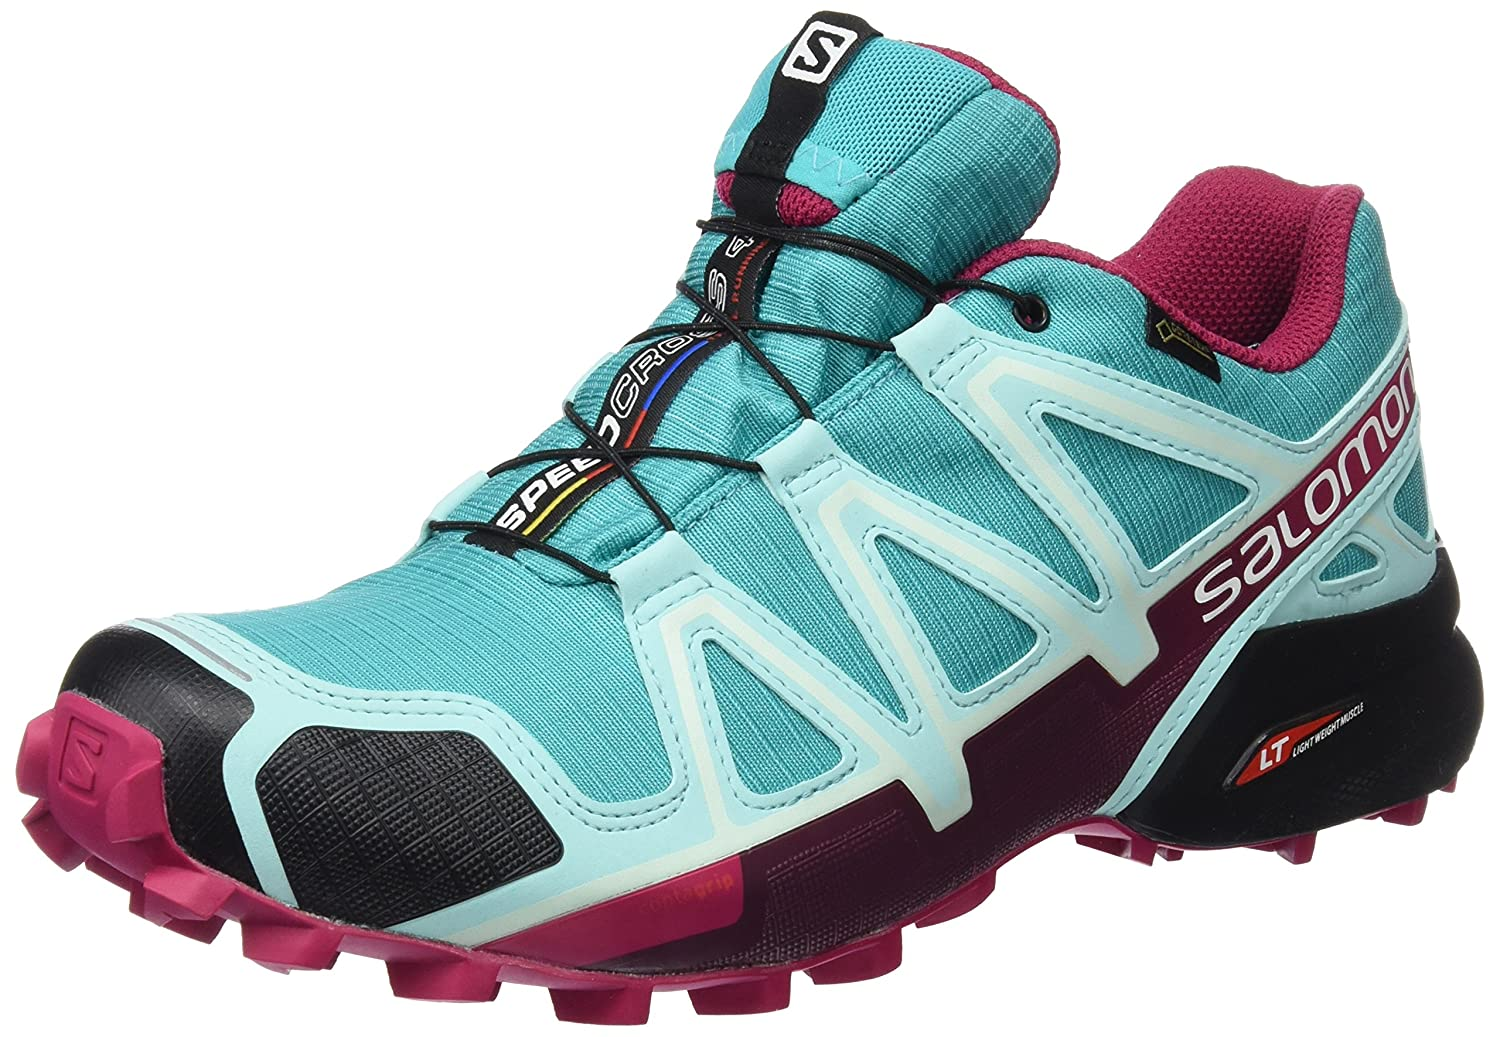 Salomon Women's Speedcross 4 GTX W Trail Running Shoe B01HD2NGD0 6.5 B(M) US|Ceramic/Aruba Blue/Sangria